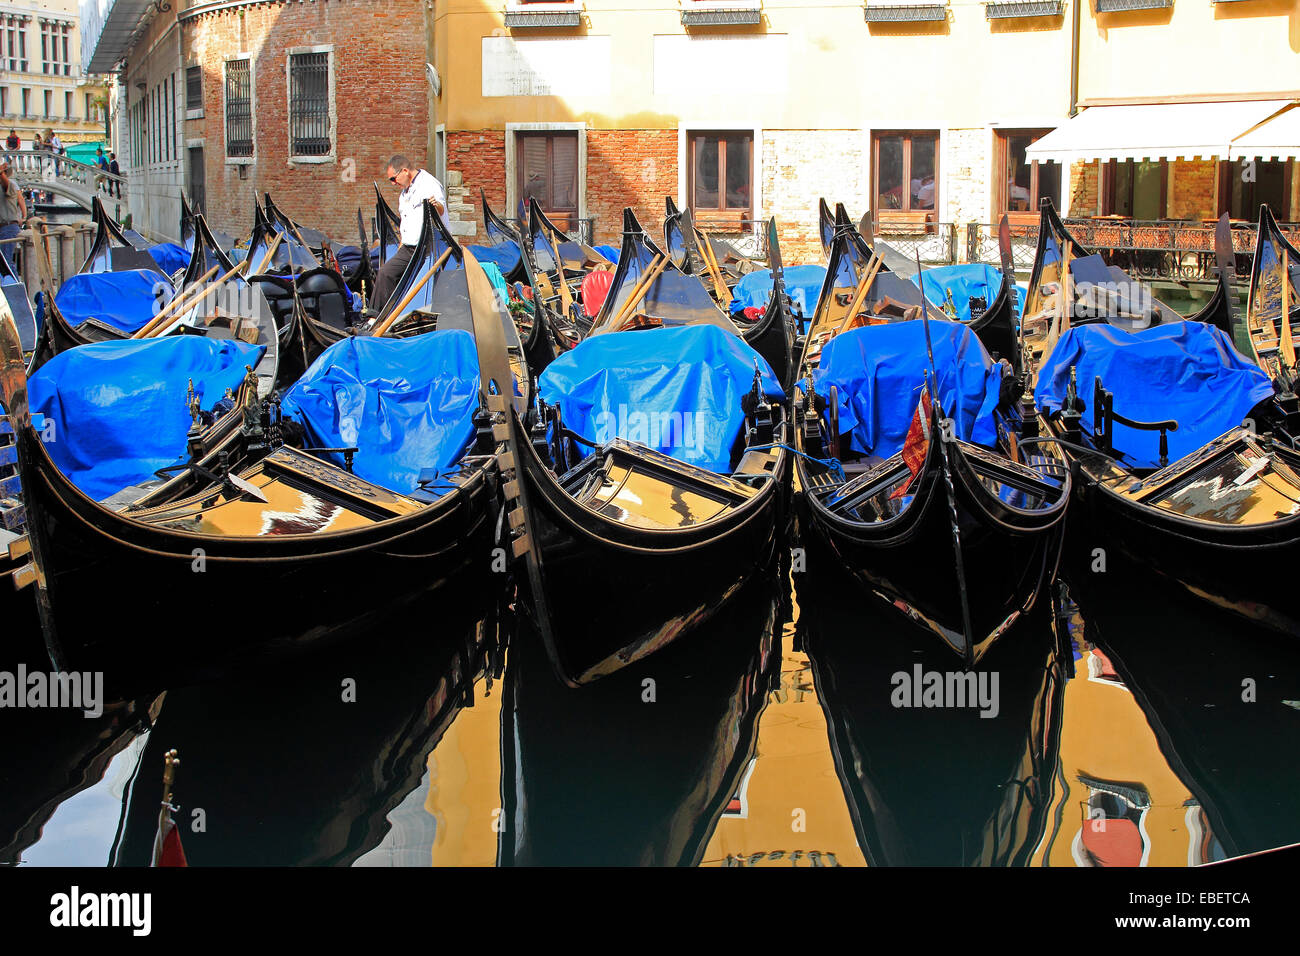 Venice Italy Piazza San Marco many gondolas in the Bacino Orseolo by St. Marks - Stock Image